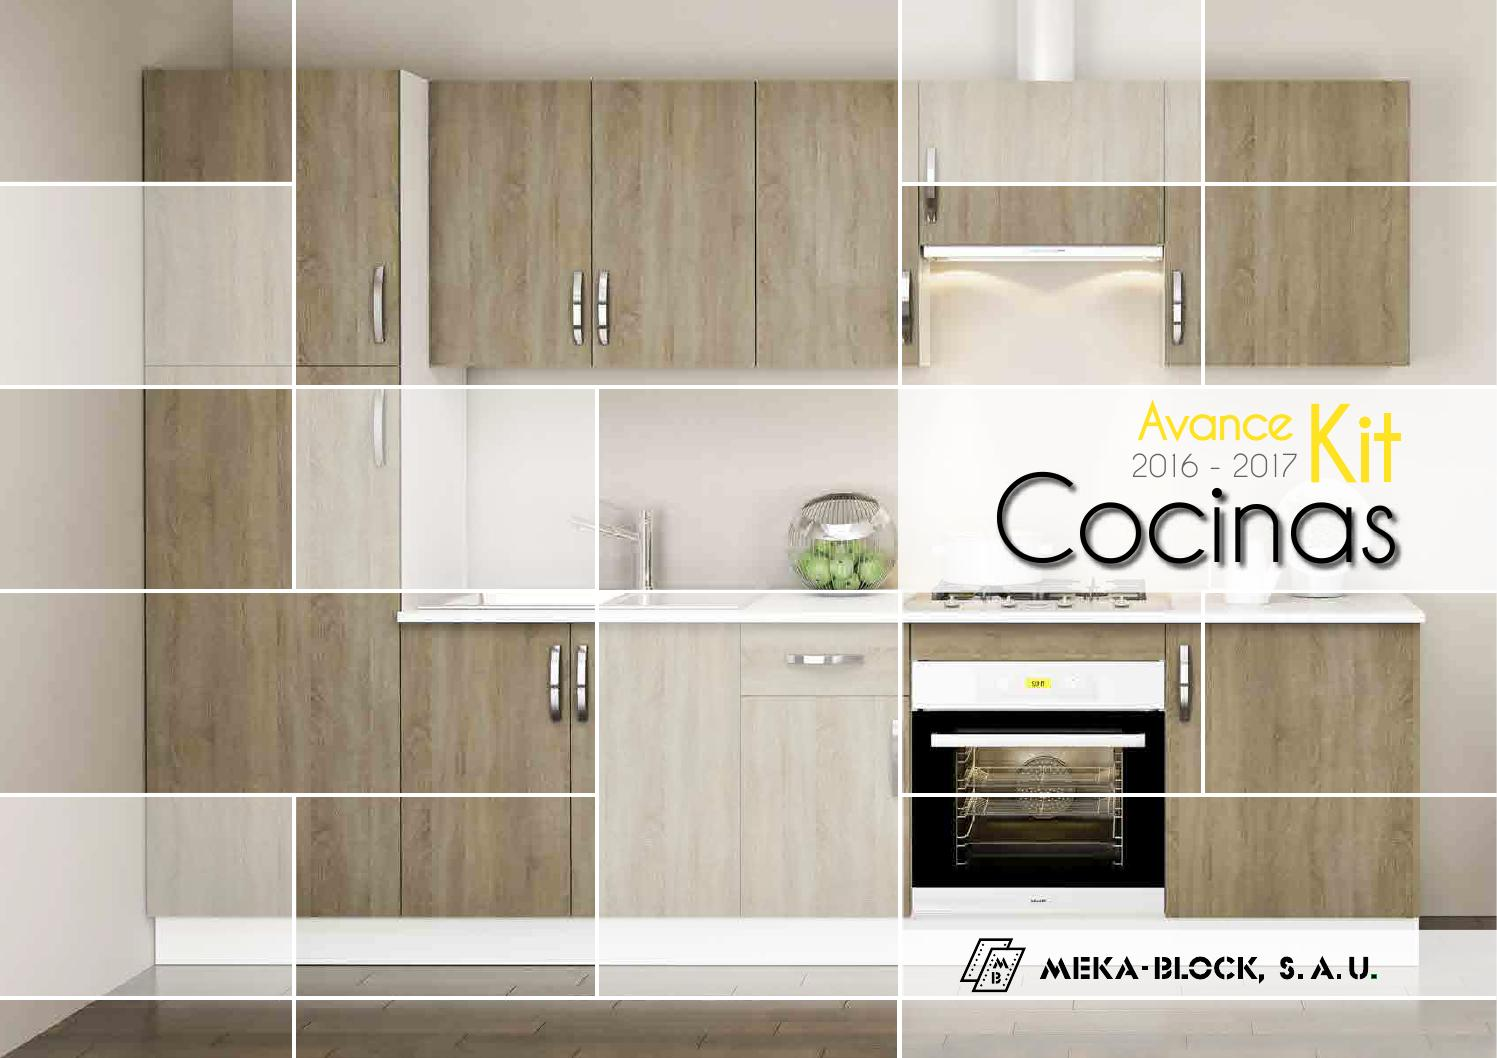 Avance catalogo cocinas 2016 2017 de meka block by meka for Catalogo de cocinas